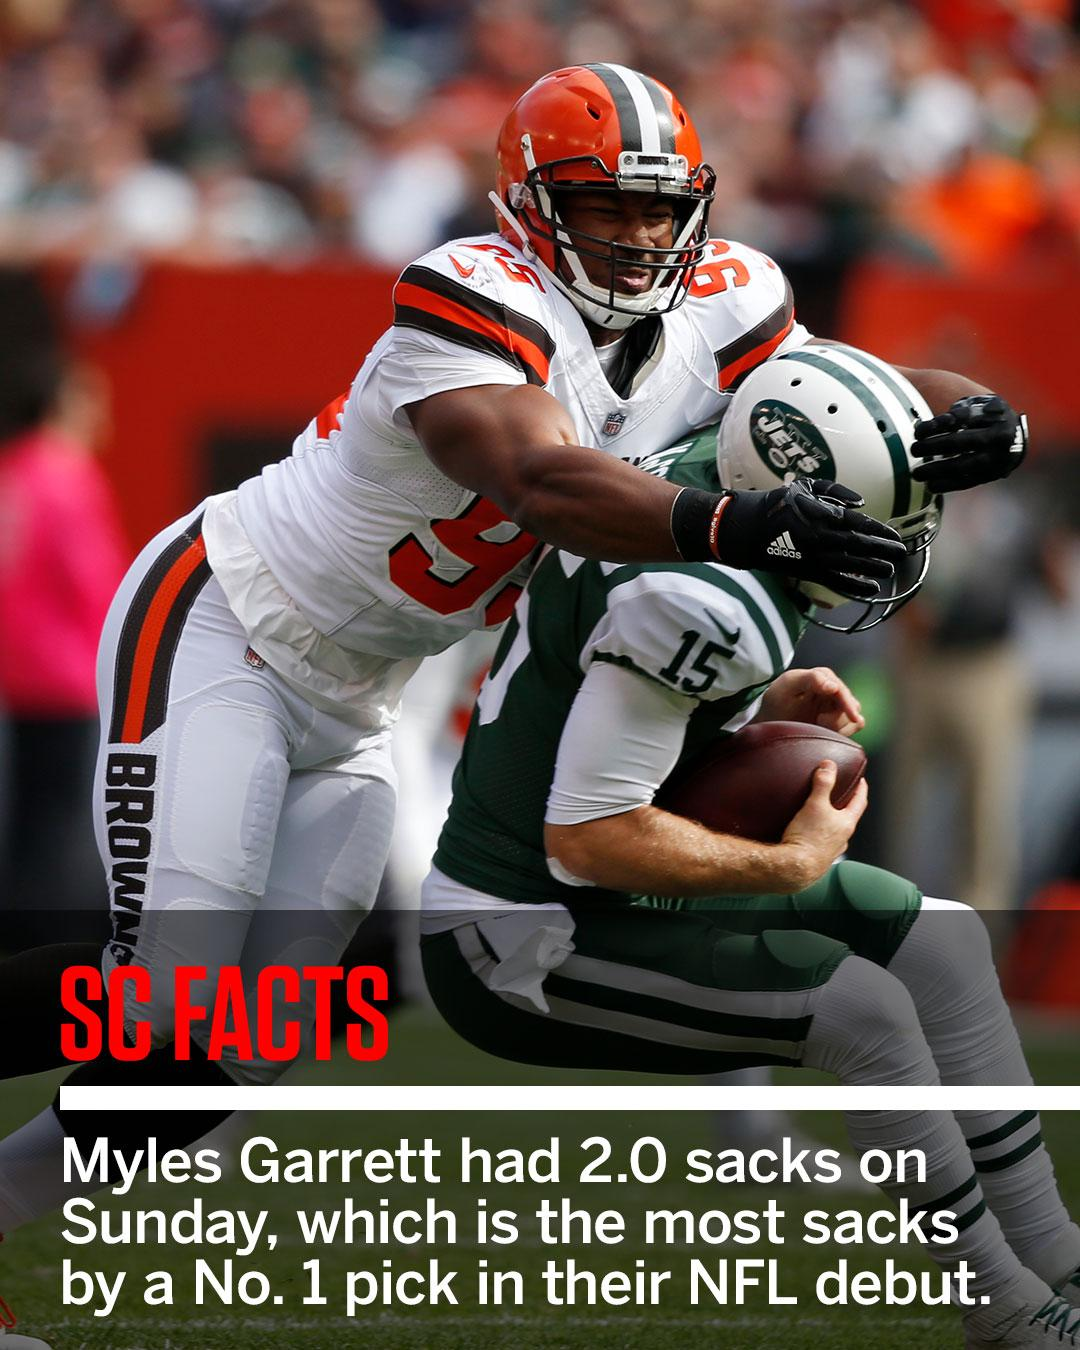 Myles Garrett did something no other first overall pick has done. #SCFacts (via @EliasSports) https://t.co/7xF2BLYVzP